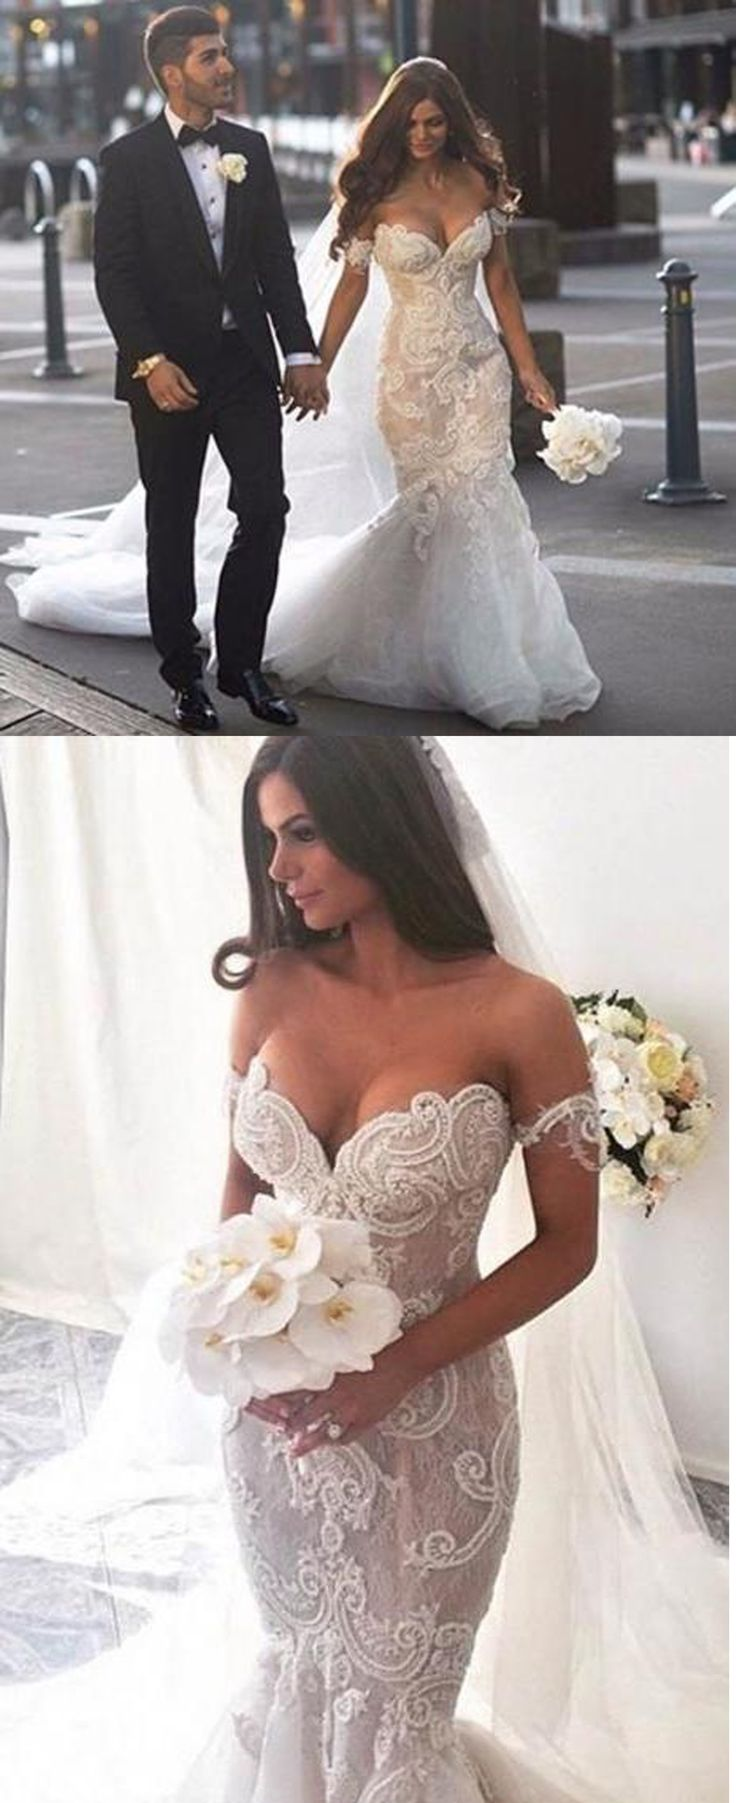 Best Mermaid Wedding Dresses 2017 : Best ideas about mermaid wedding dresses on